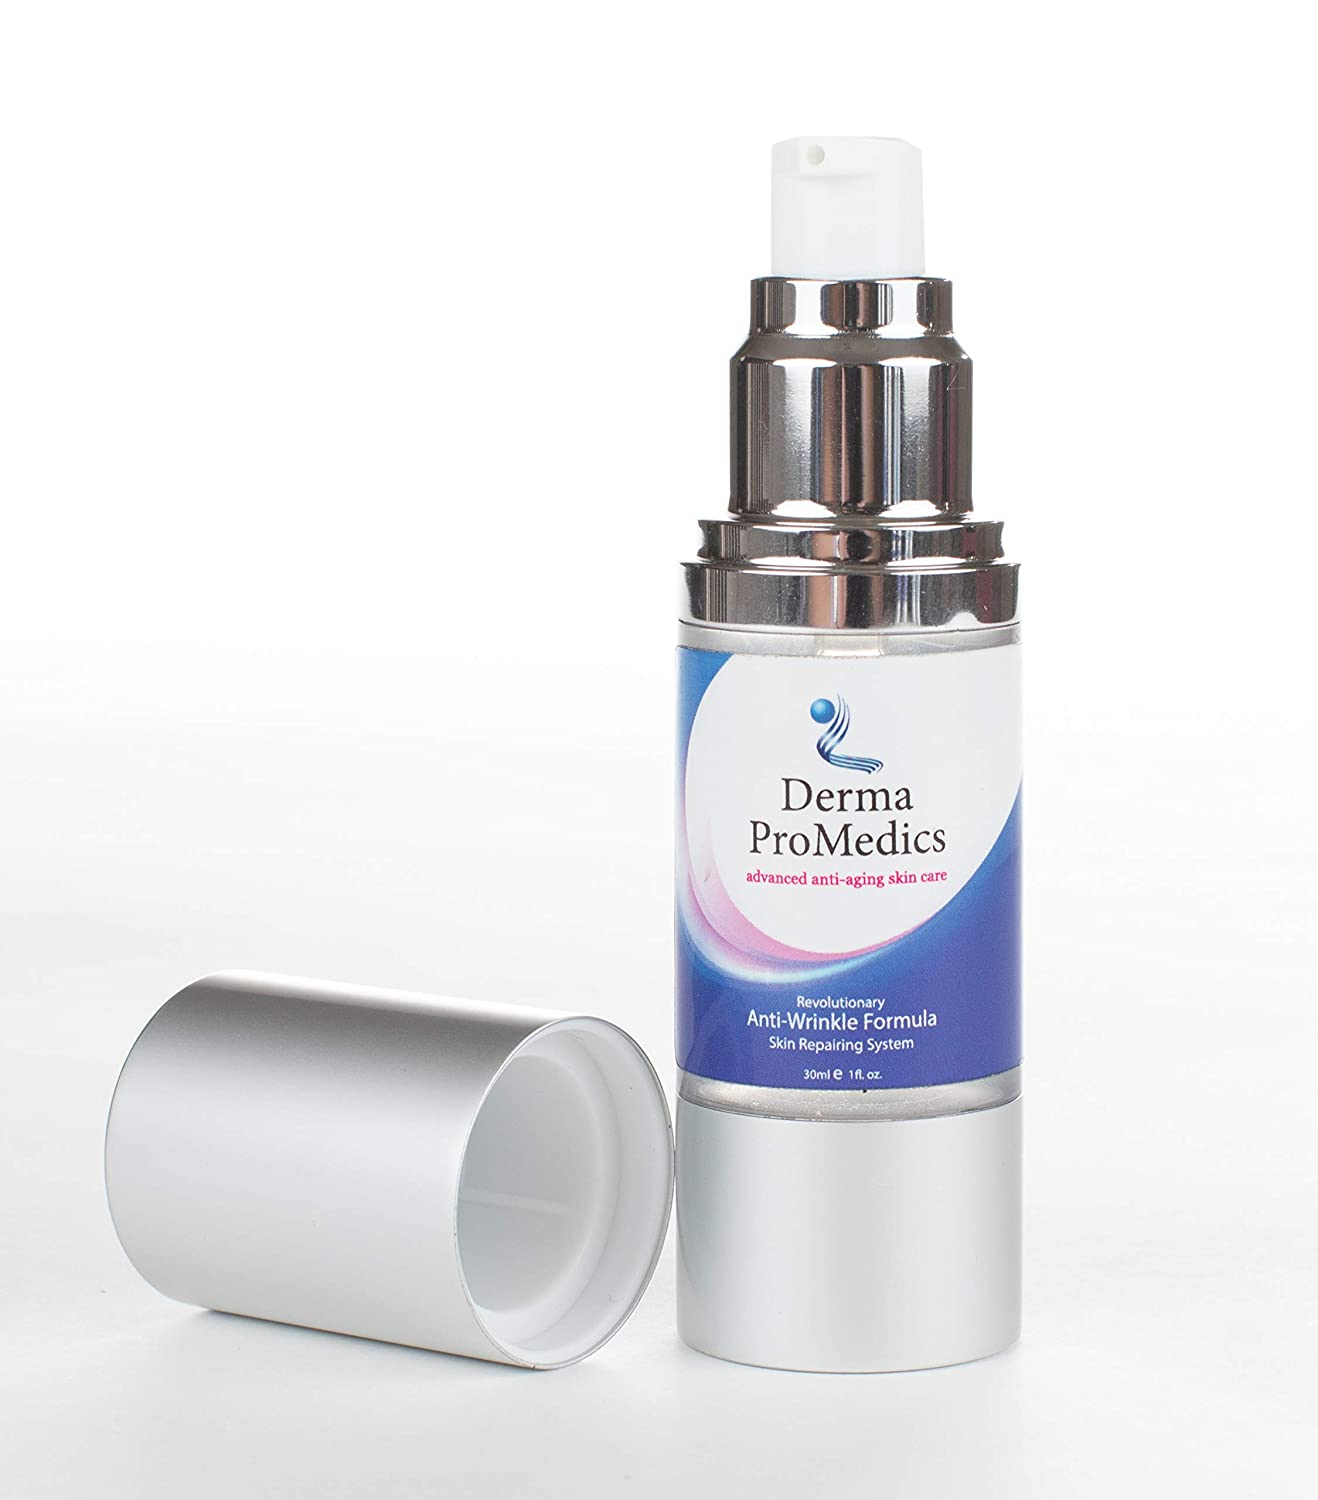 Derma ProMedics Anti-Aging Serum - Moisturizing Serum - Daily Use Rejuvenates Skin, Reduces Wrinkles, and Keeps Your Face Looking Young, Healthy, and Glowing